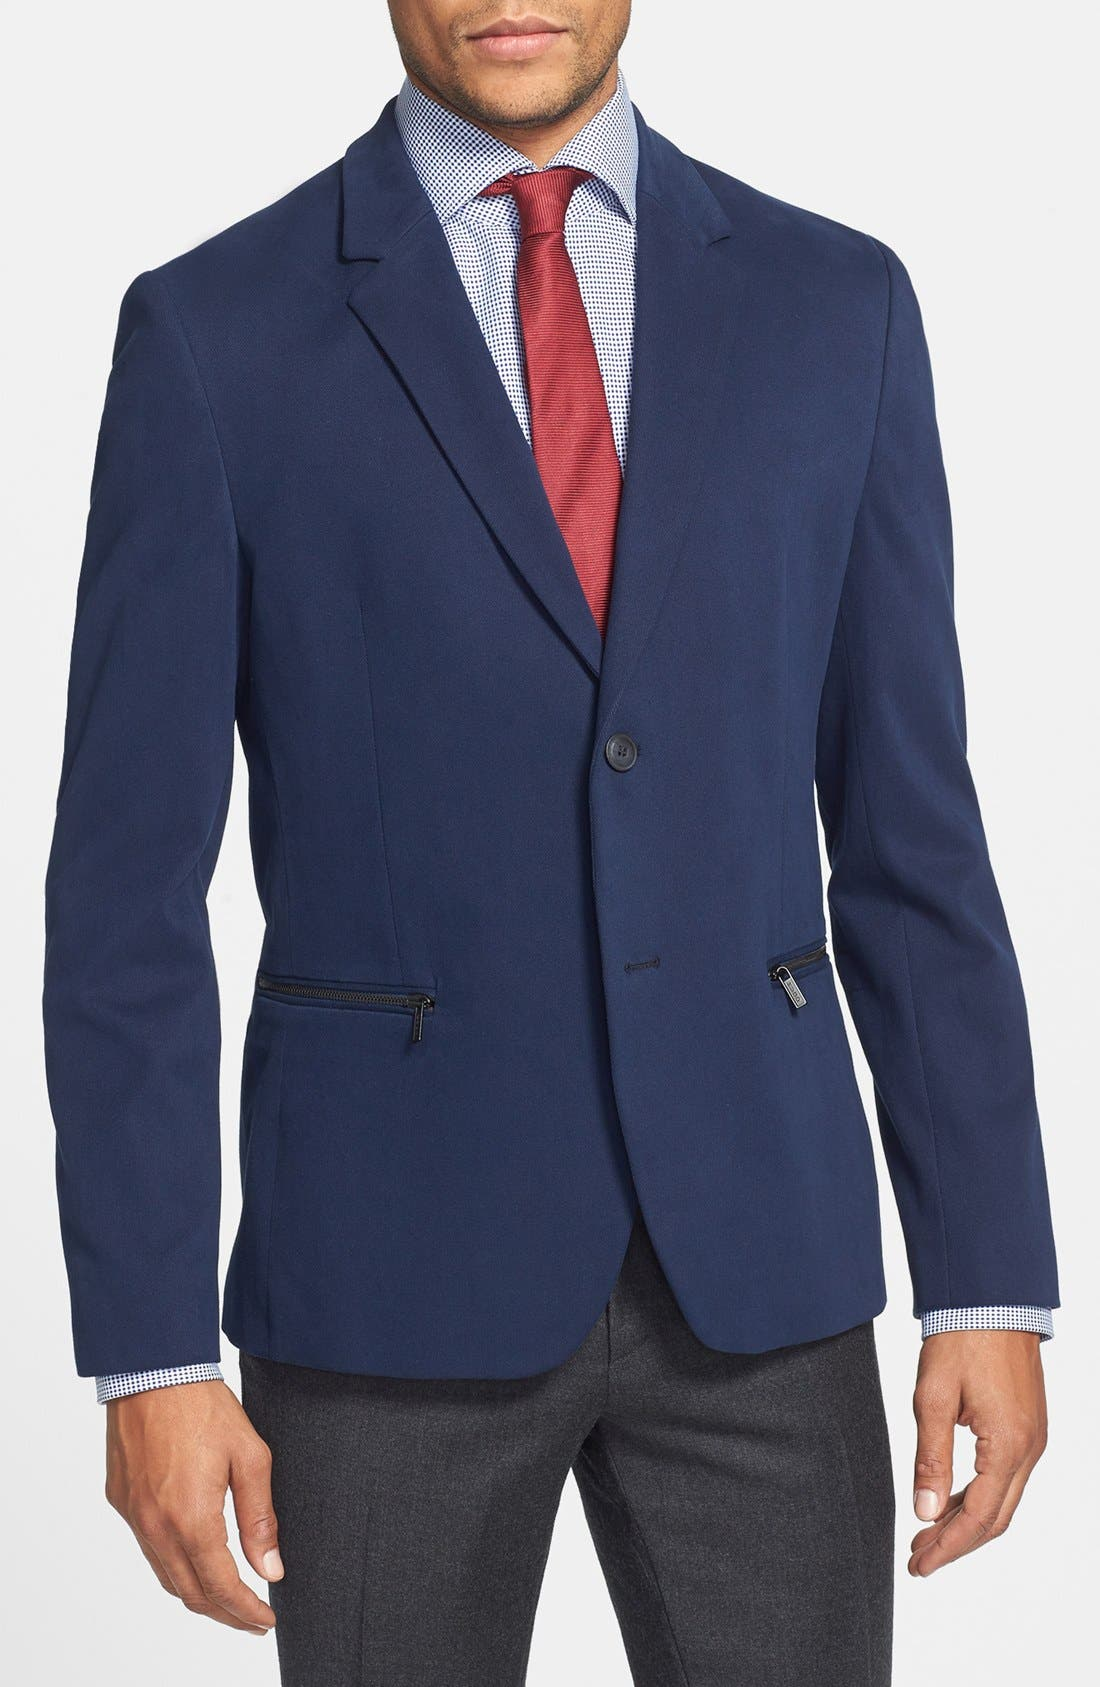 Main Image - HUGO 'Alston' Sportcoat